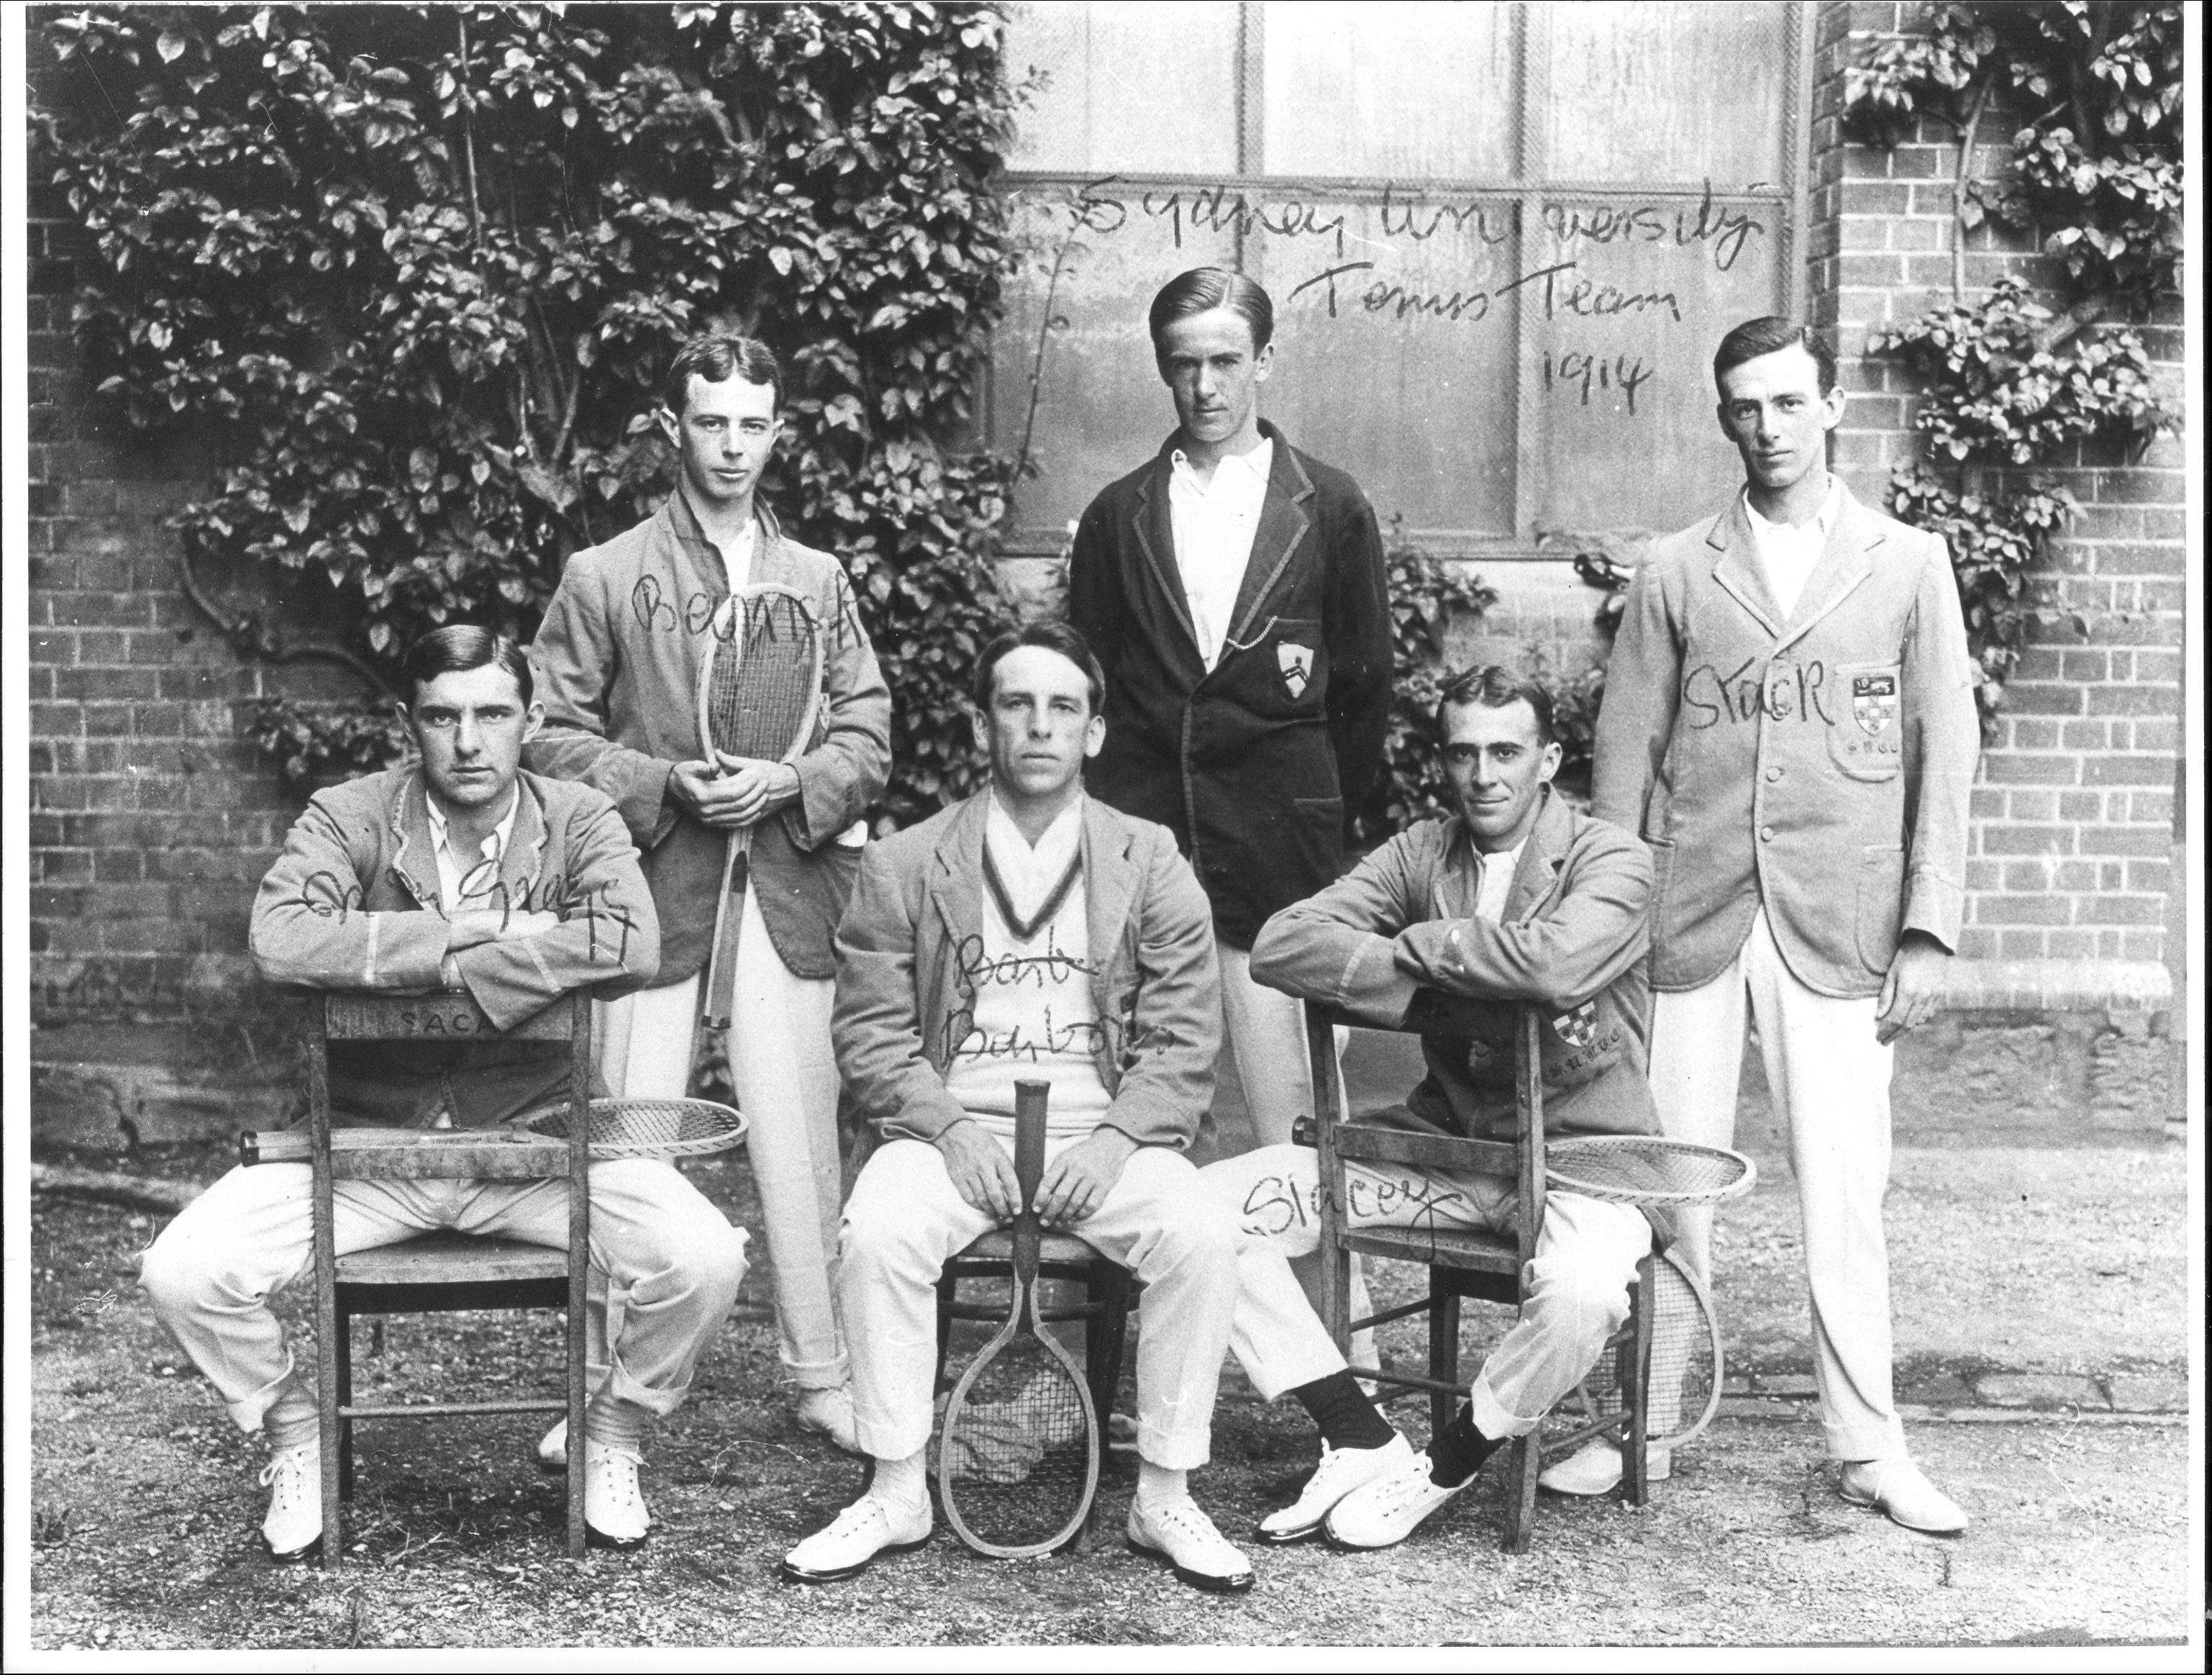 Norman Gregg in the University of SydneyTennis Team 1914.jpg, Copyright University of Sydney